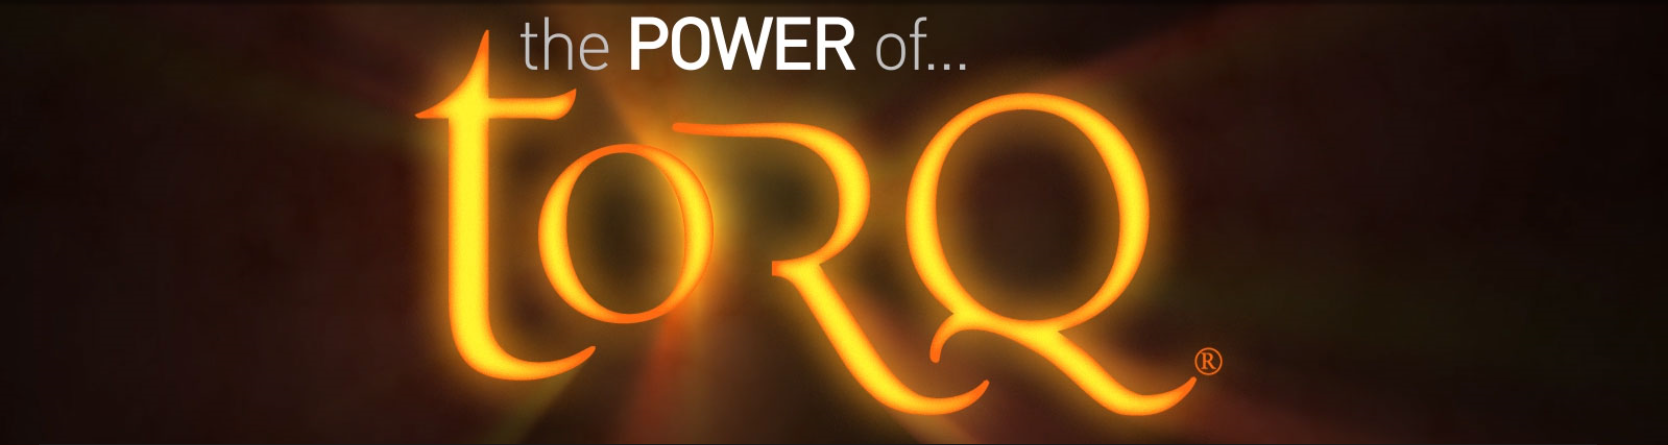 power-of-torq-banner.png